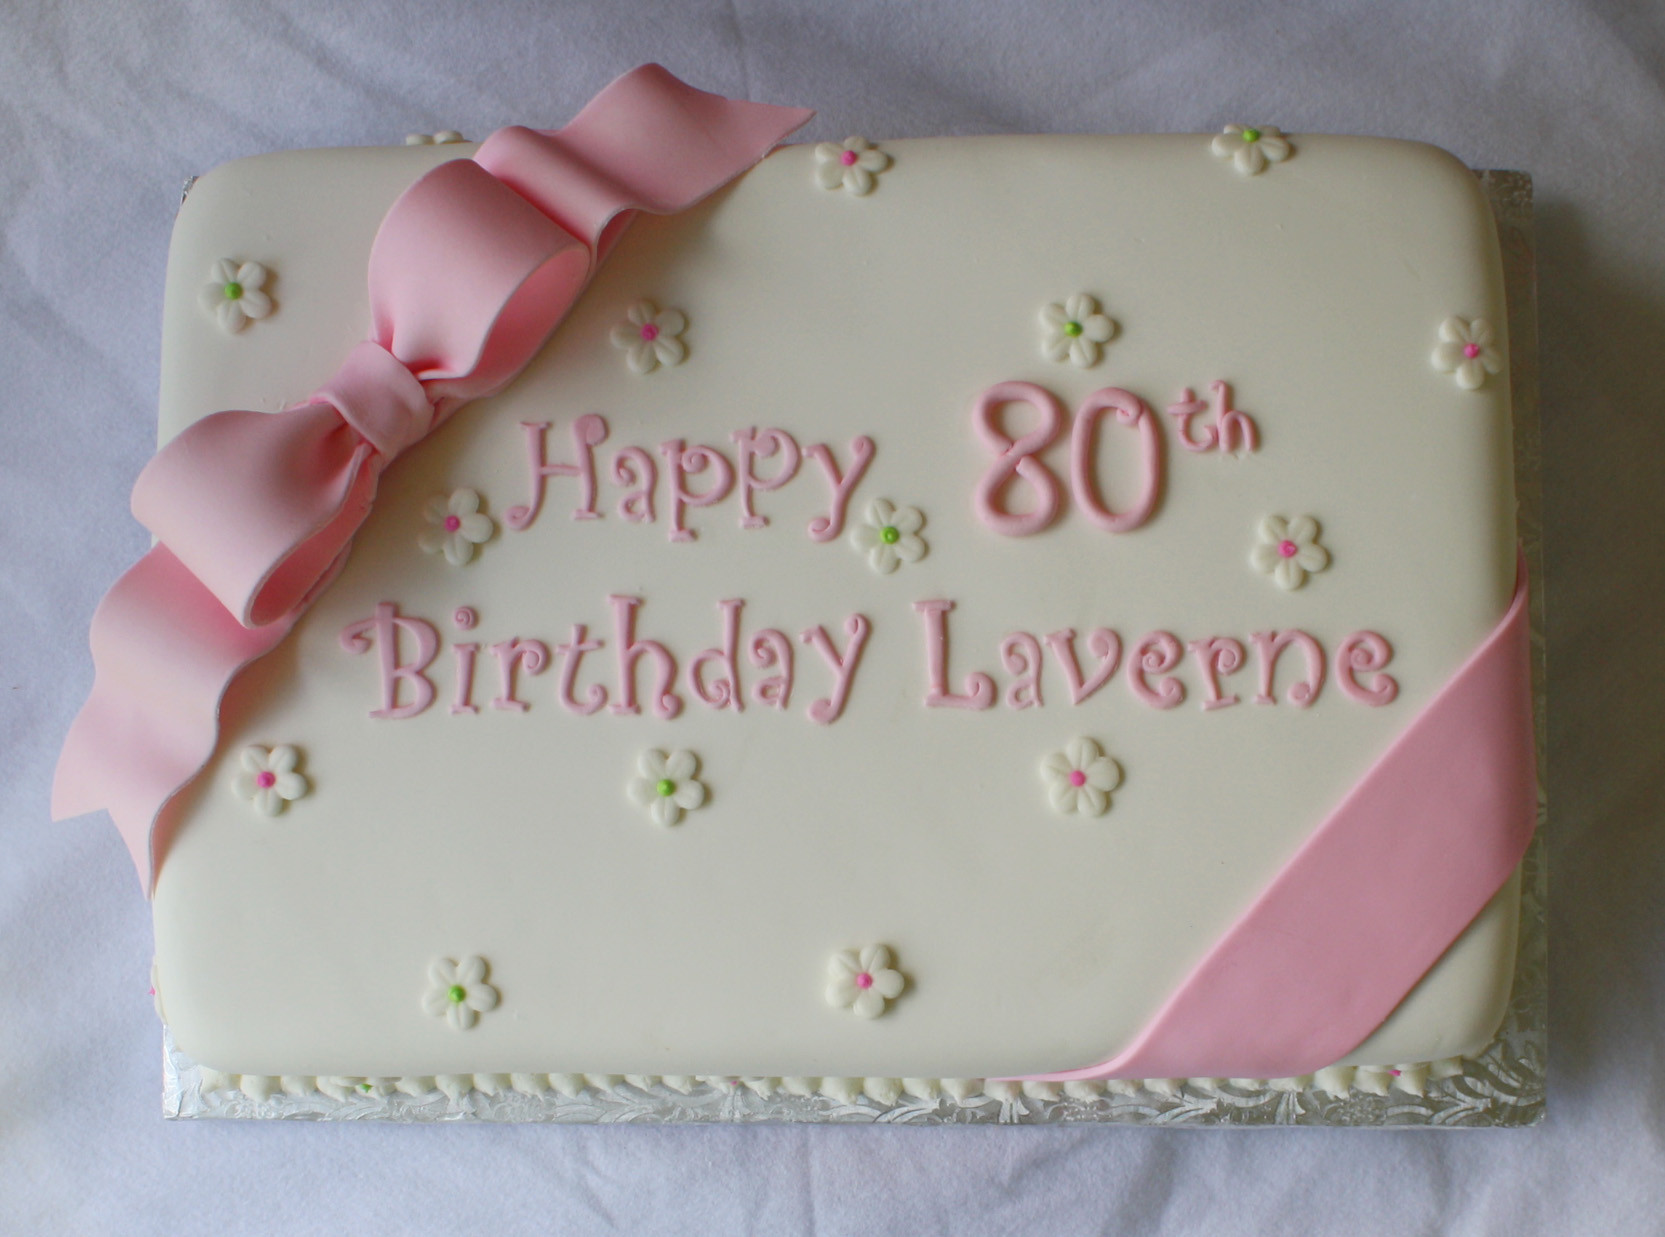 Birthday Sheet Cake  Pink & Green Sheet Cakes for 1st and 80th Birthdays